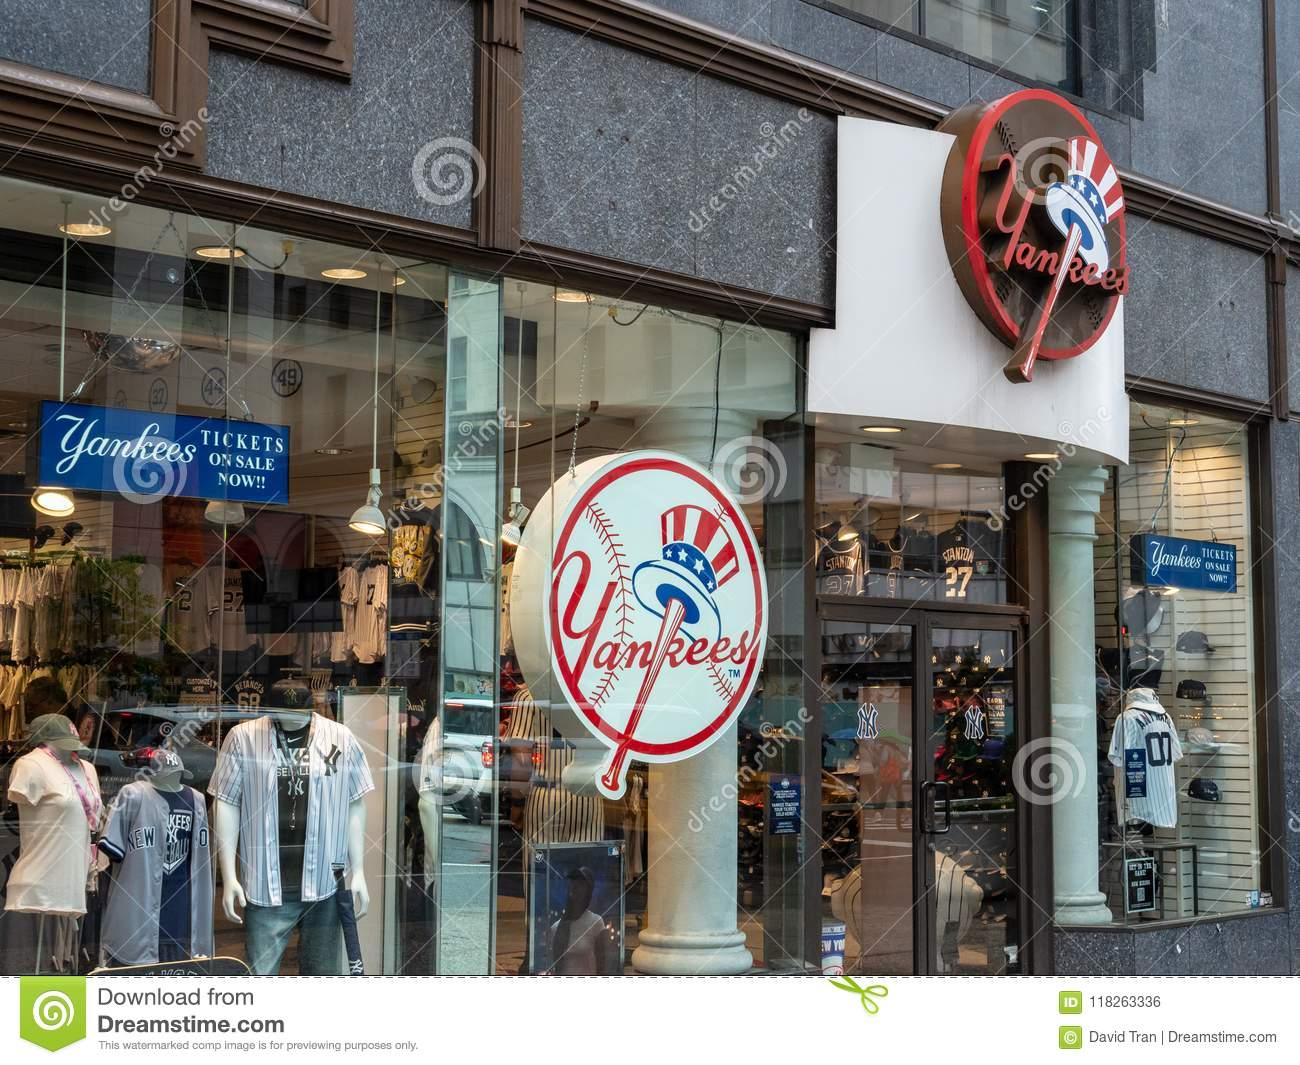 d4330888aa8 Store Front Of New York Yankees Team Store On 5th Avenue In New ...